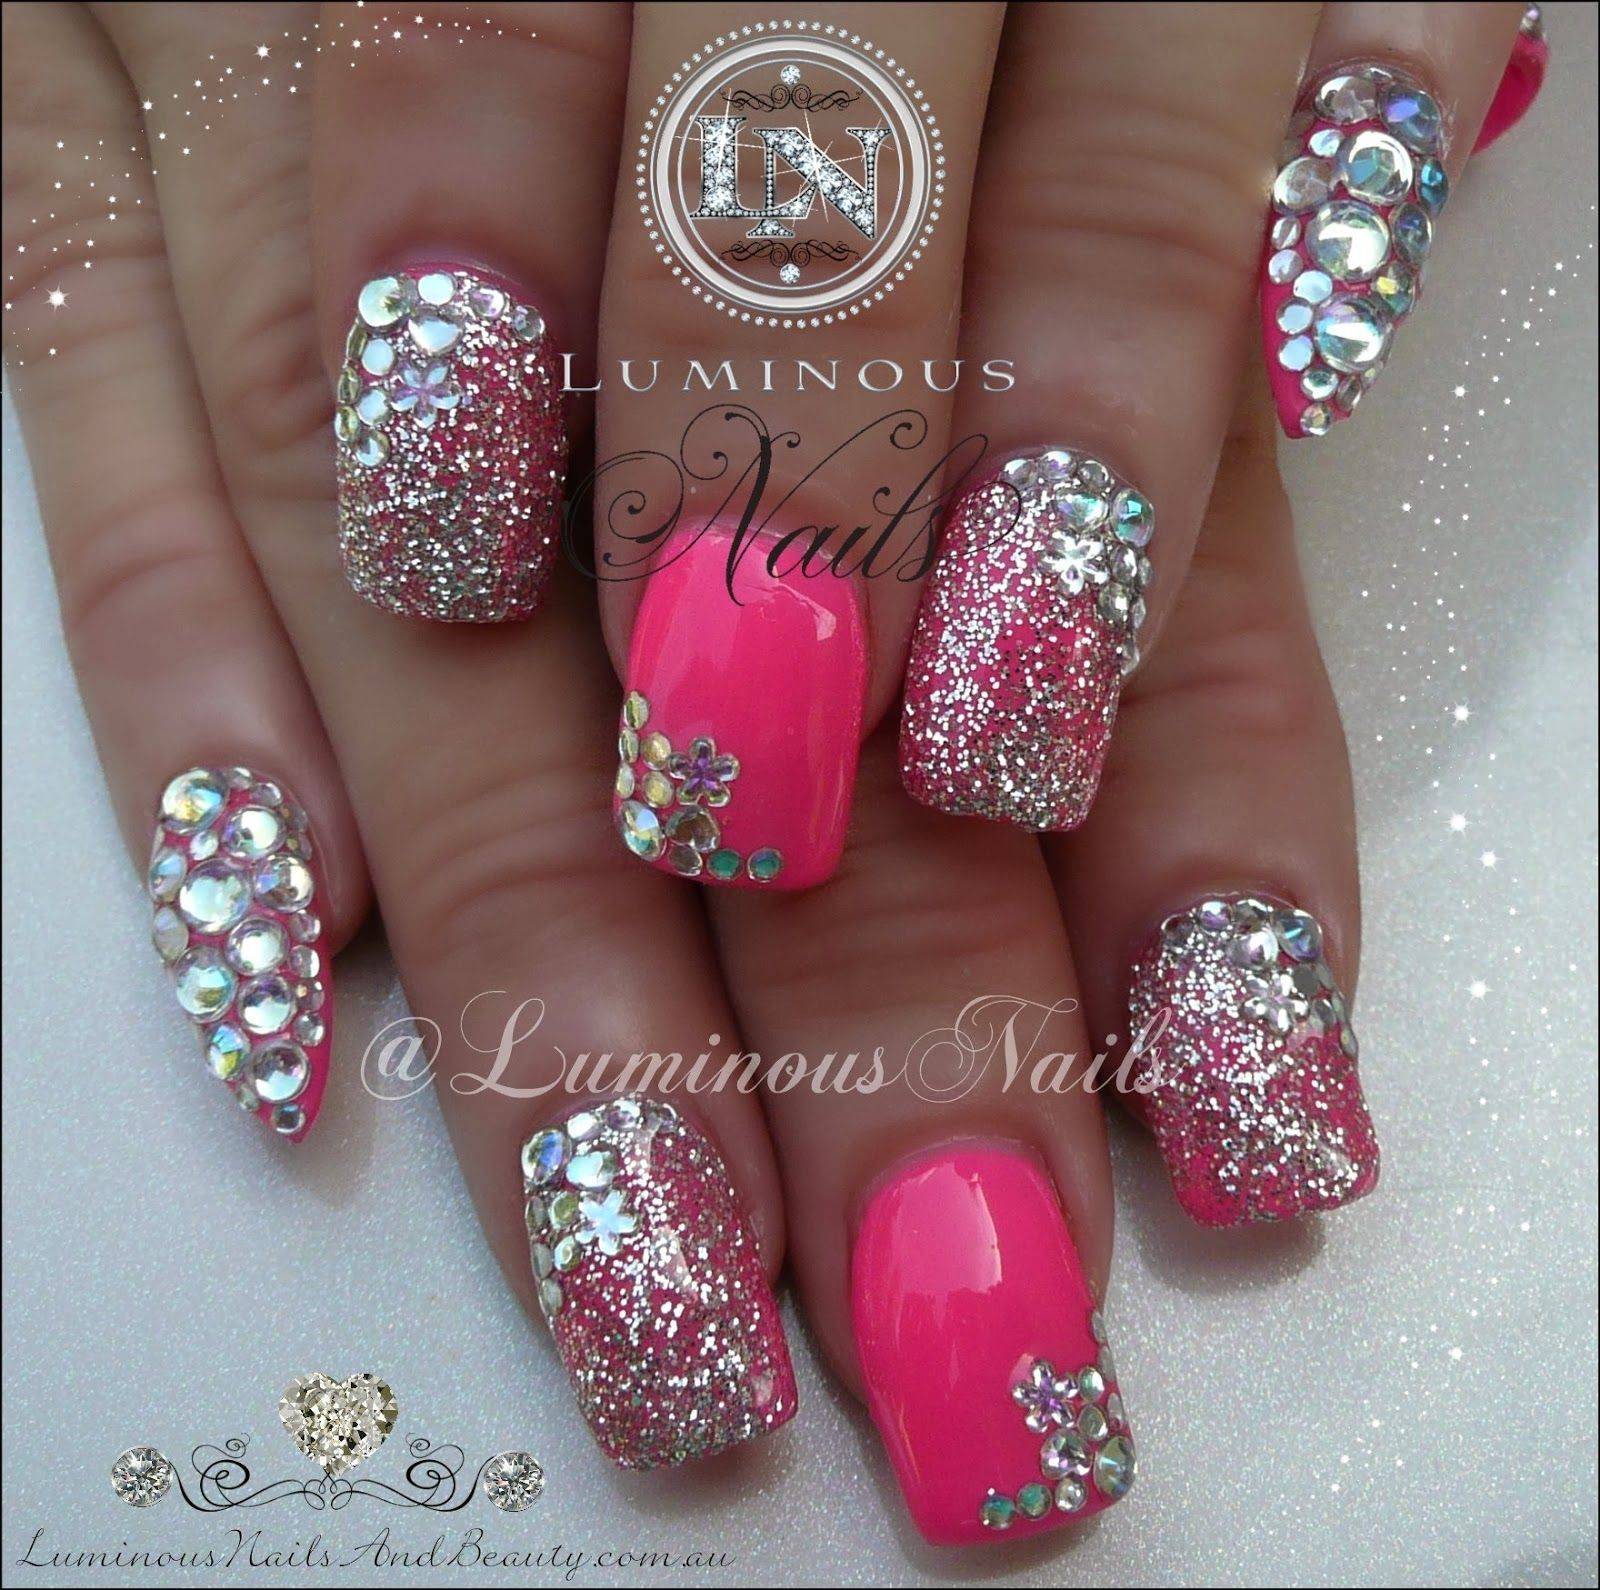 new nail art ideas have been published on wooden bling http://blog